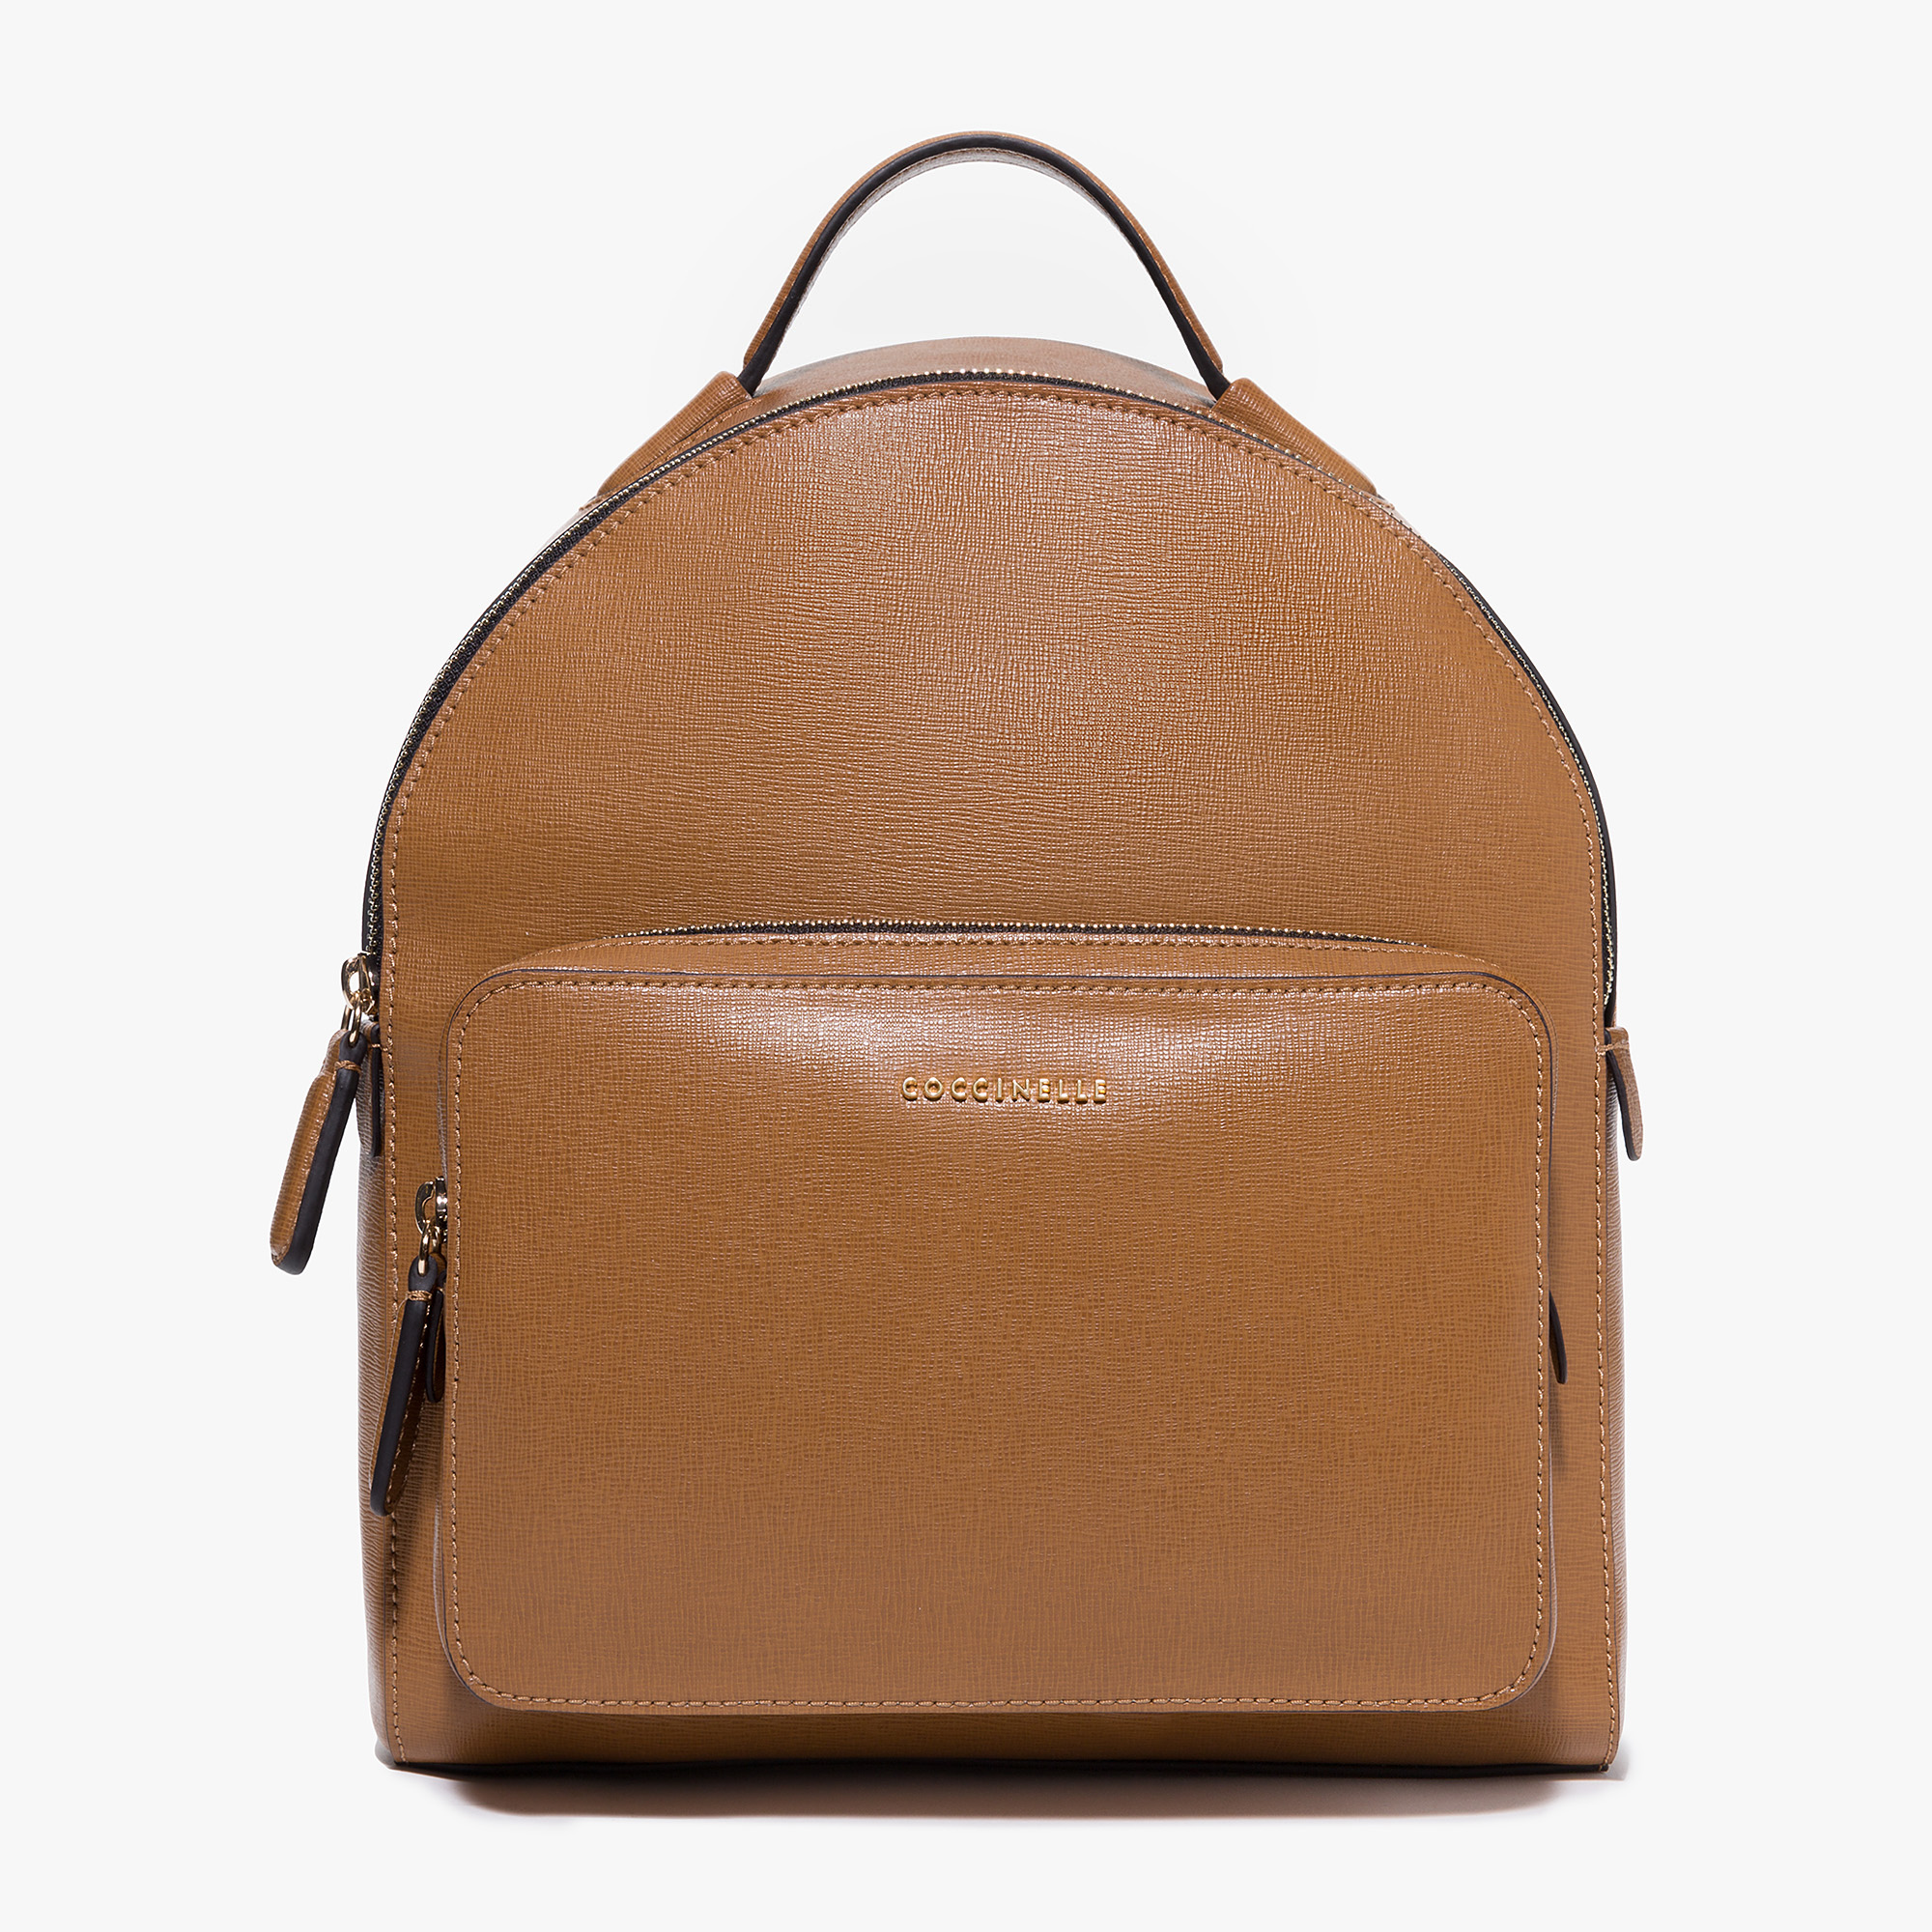 Clementine saffiano leather backpack